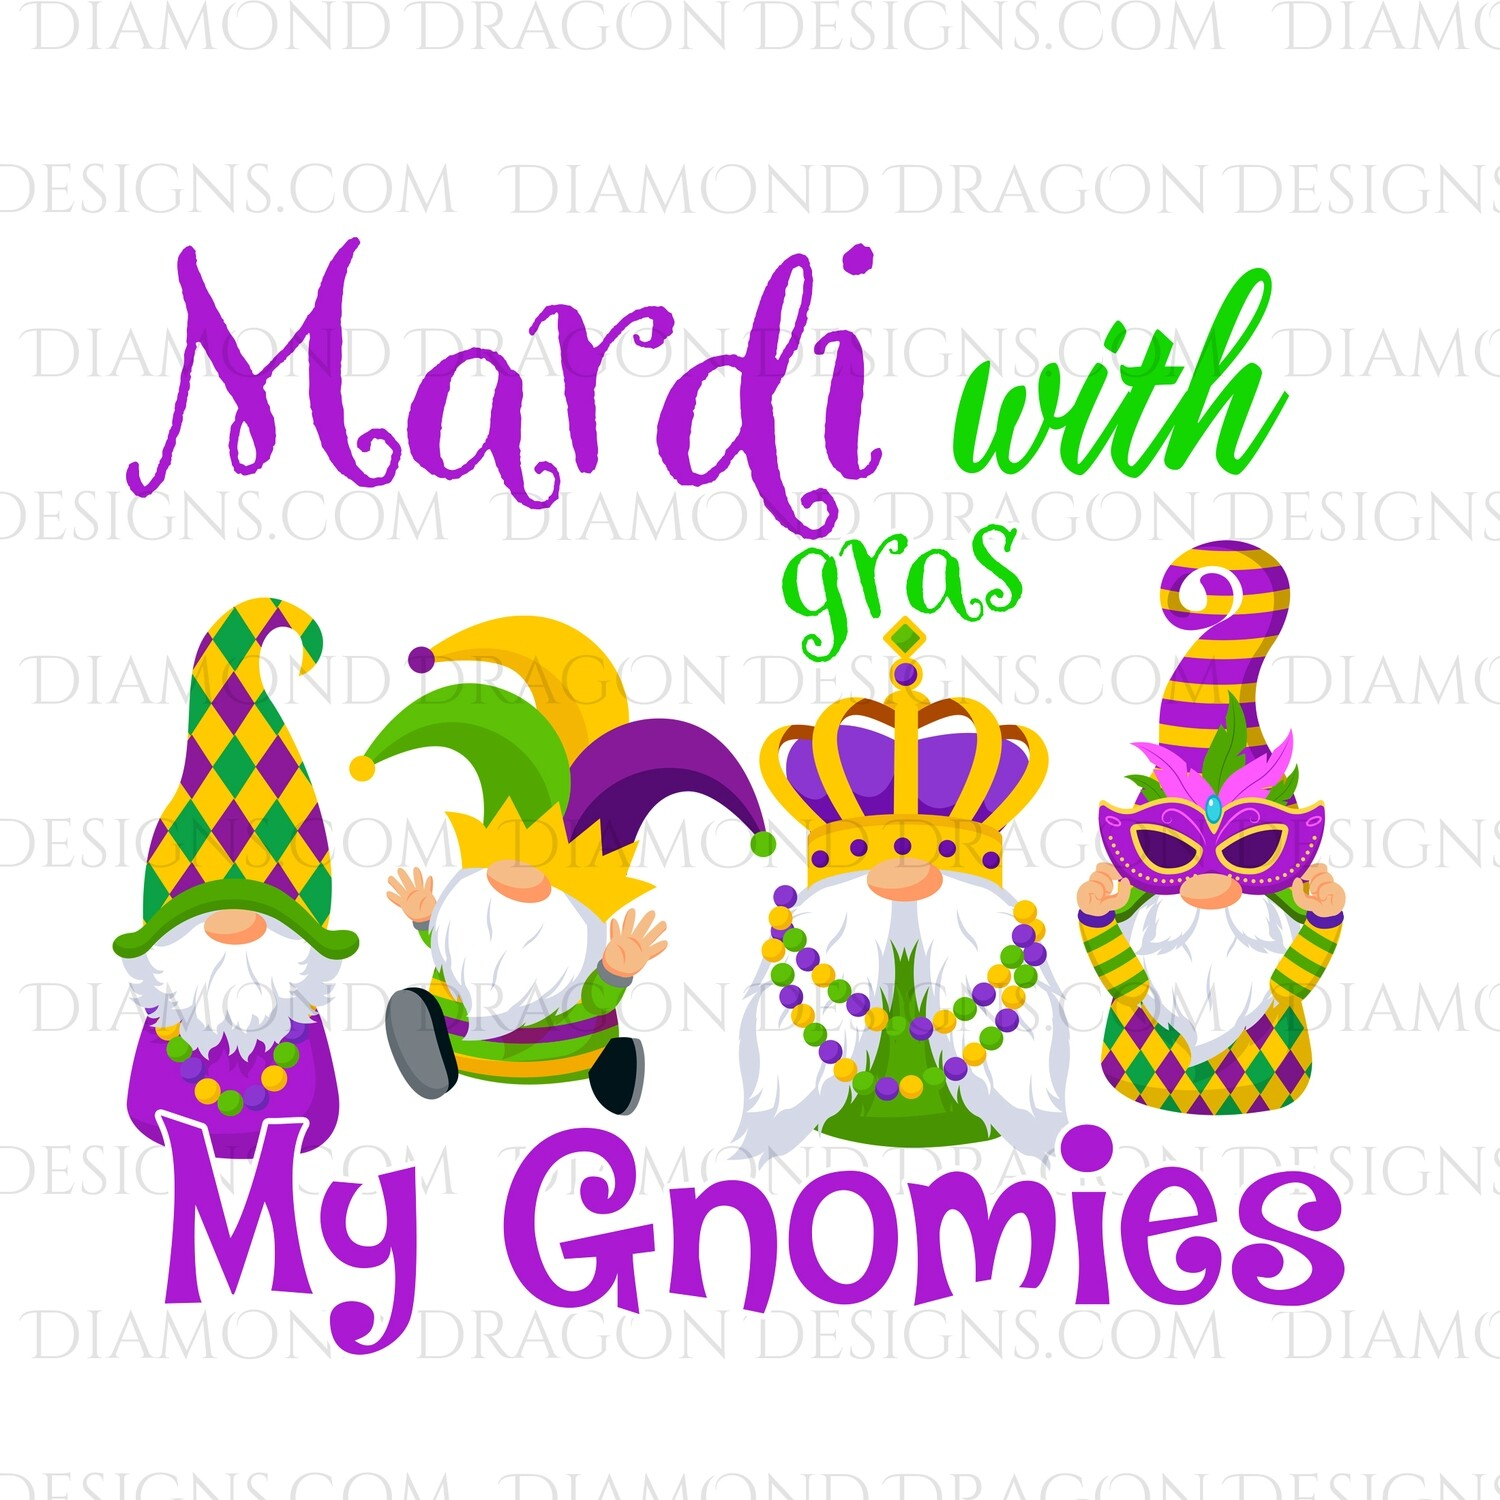 Mardi Gras - Mardi with my Gnomies - Waterslide Decal